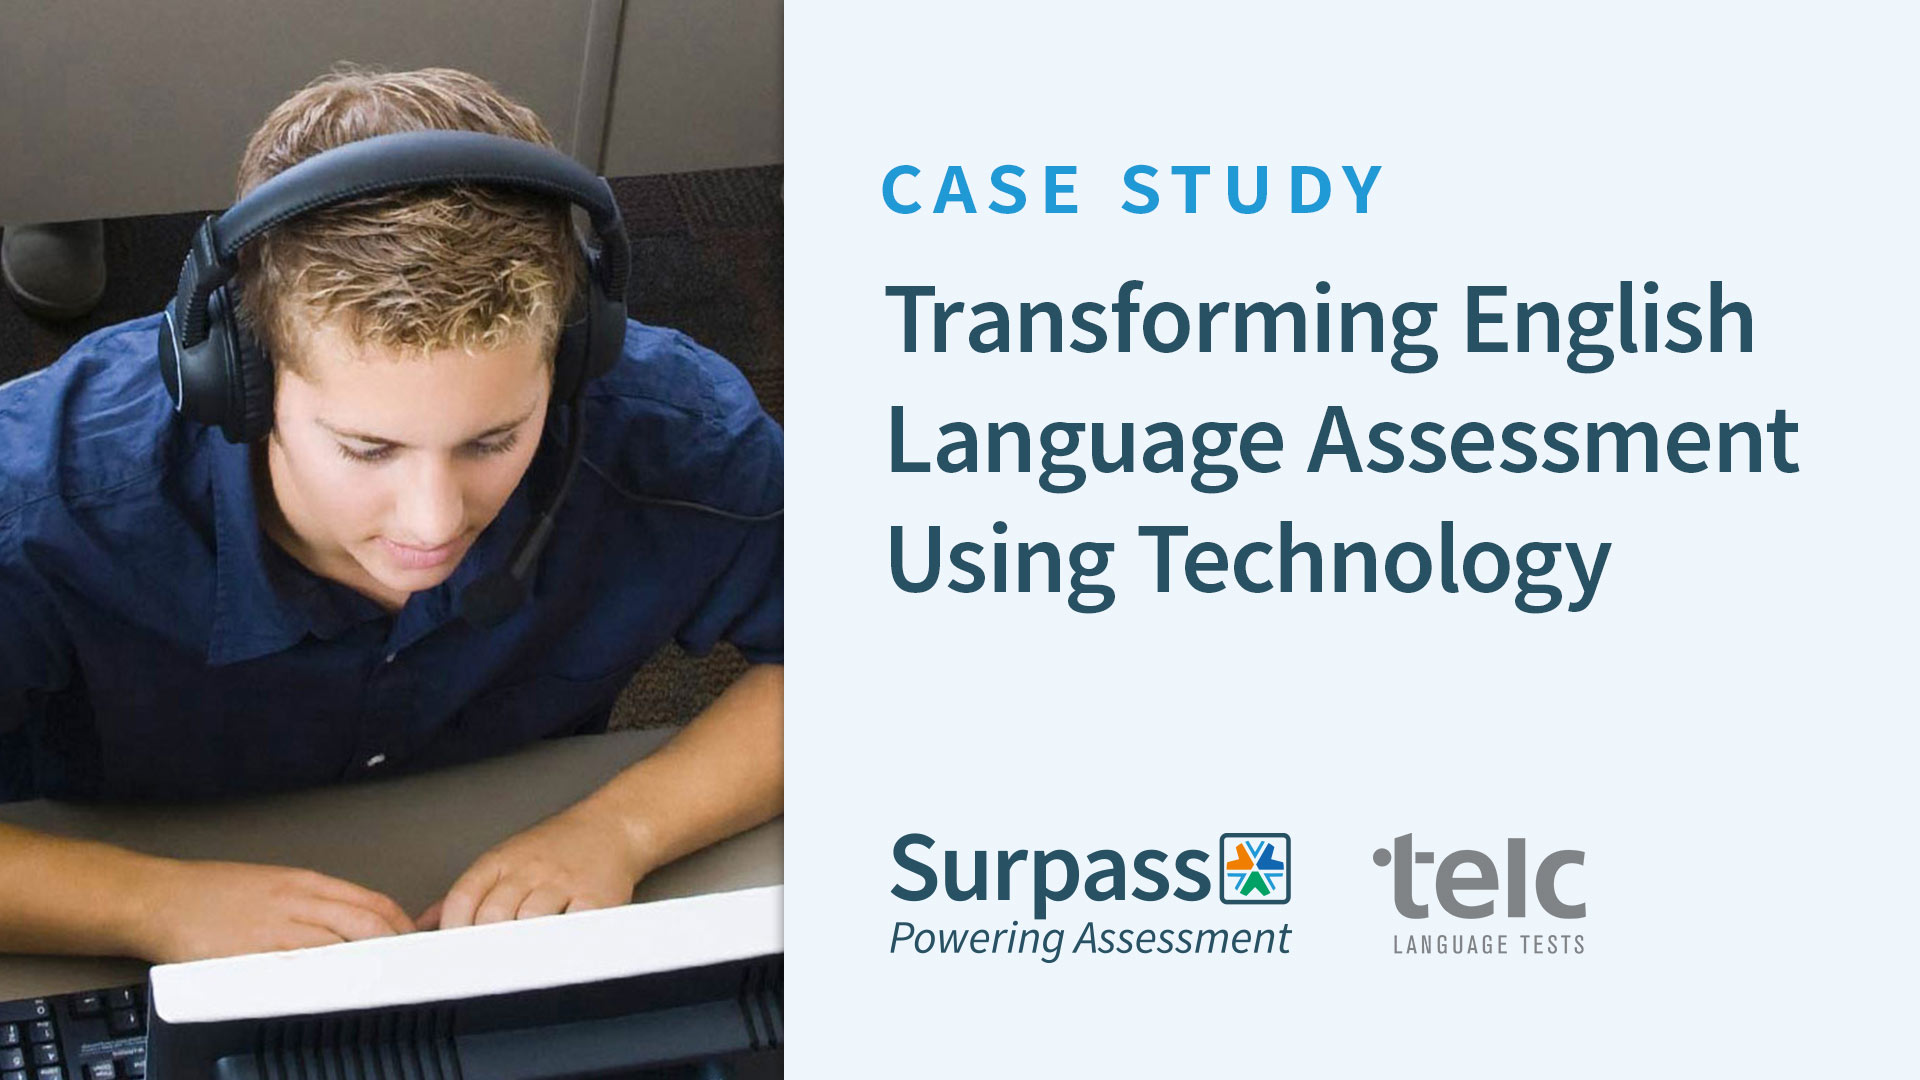 Case Study – Transforming English Language Assessment Using Technology